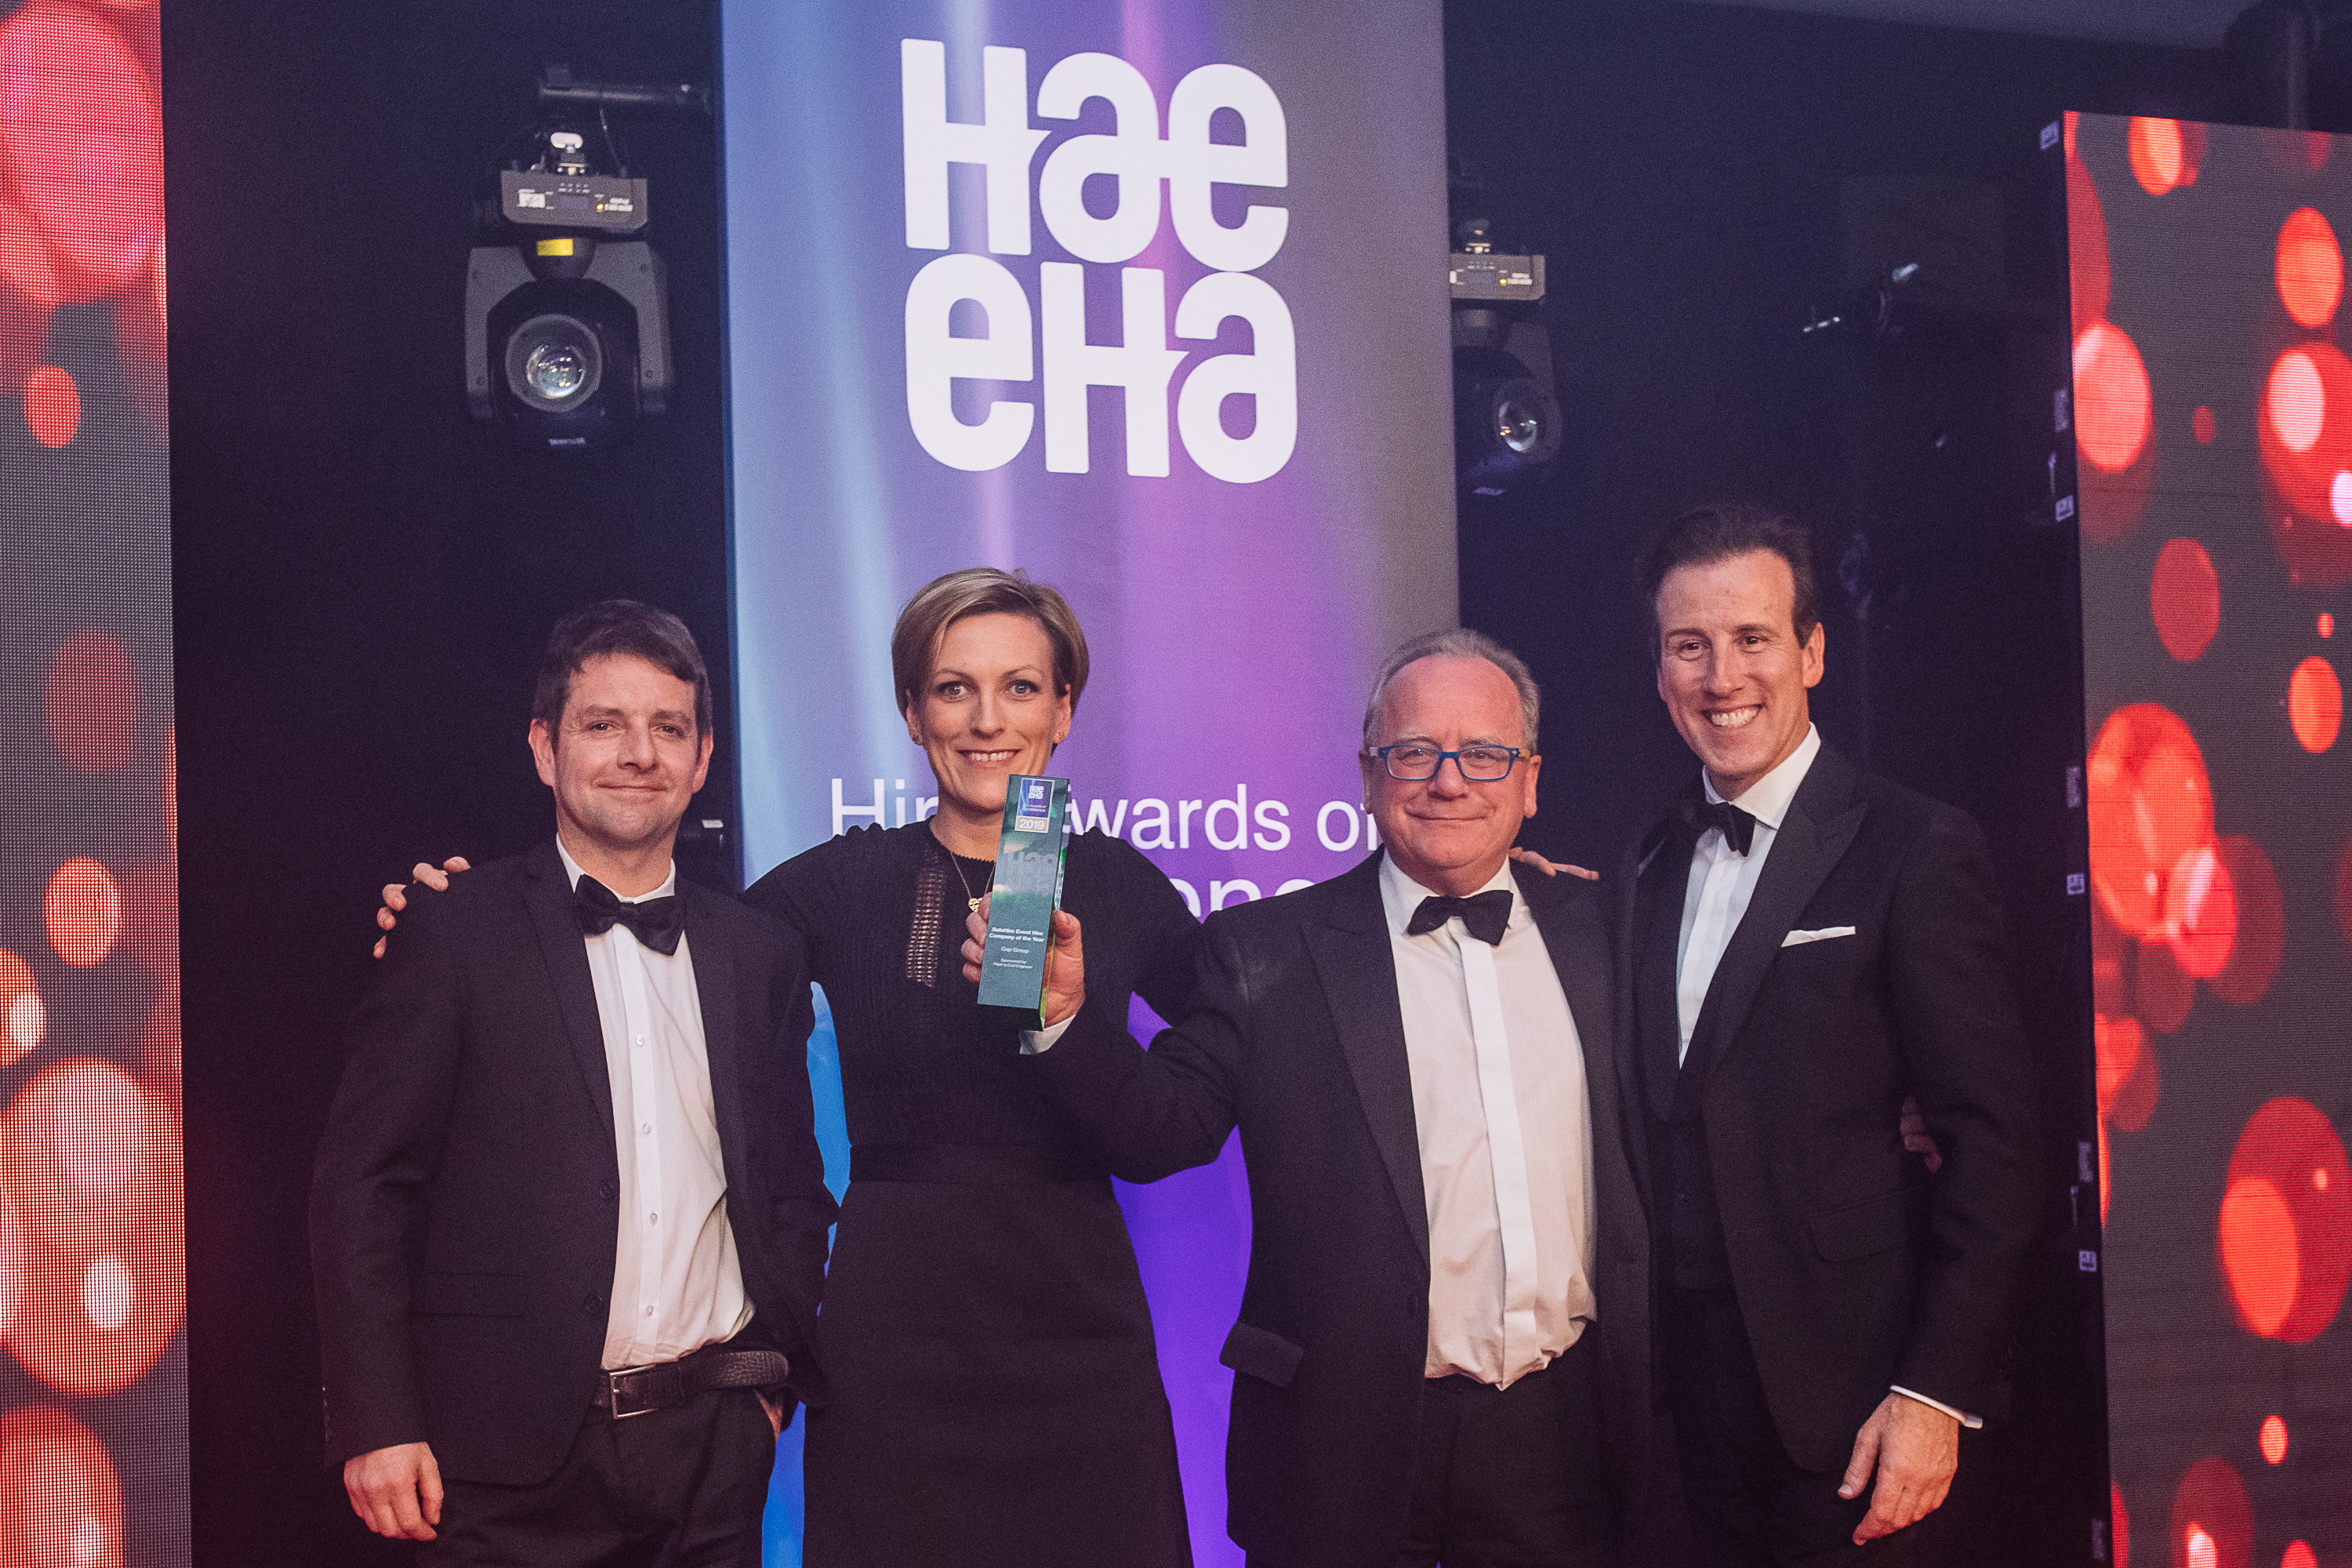 Iain Anderson and Karen Greenshields Events Award HAE 2019